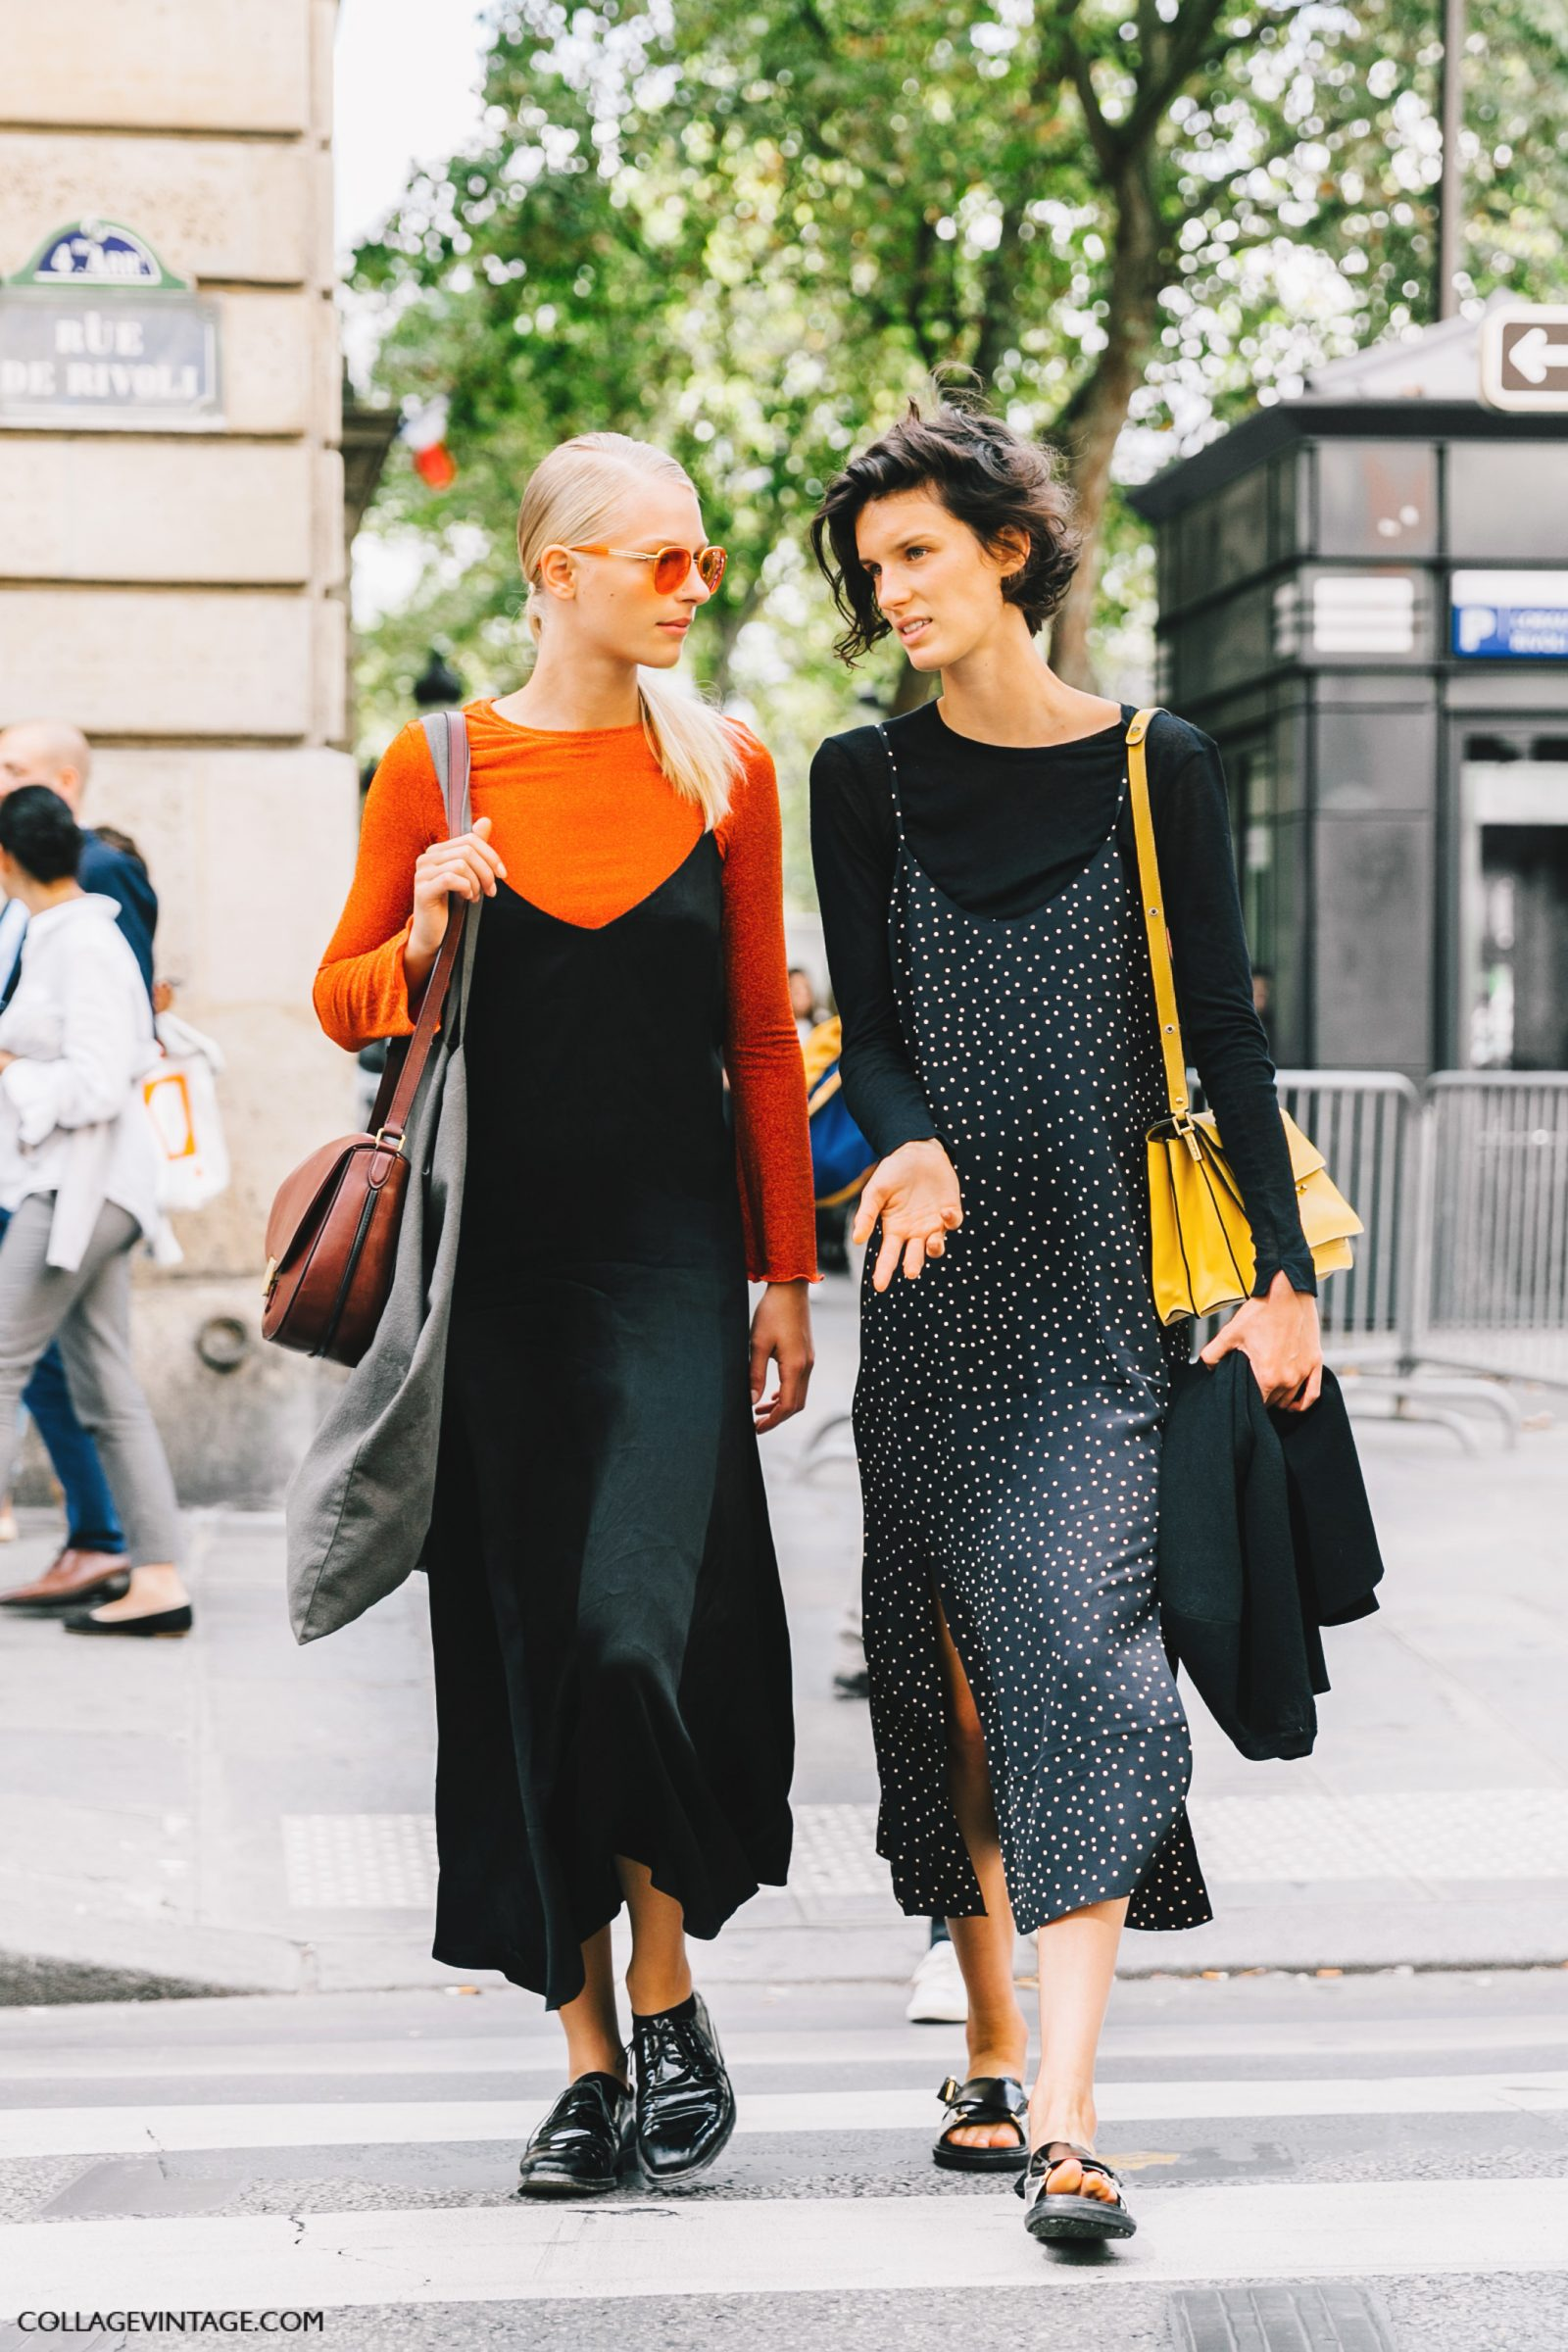 pfw-paris_fashion_week_ss17-street_style-outfits-collage_vintage-rochas-courreges-dries_van_noten-lanvin-guy_laroche-128